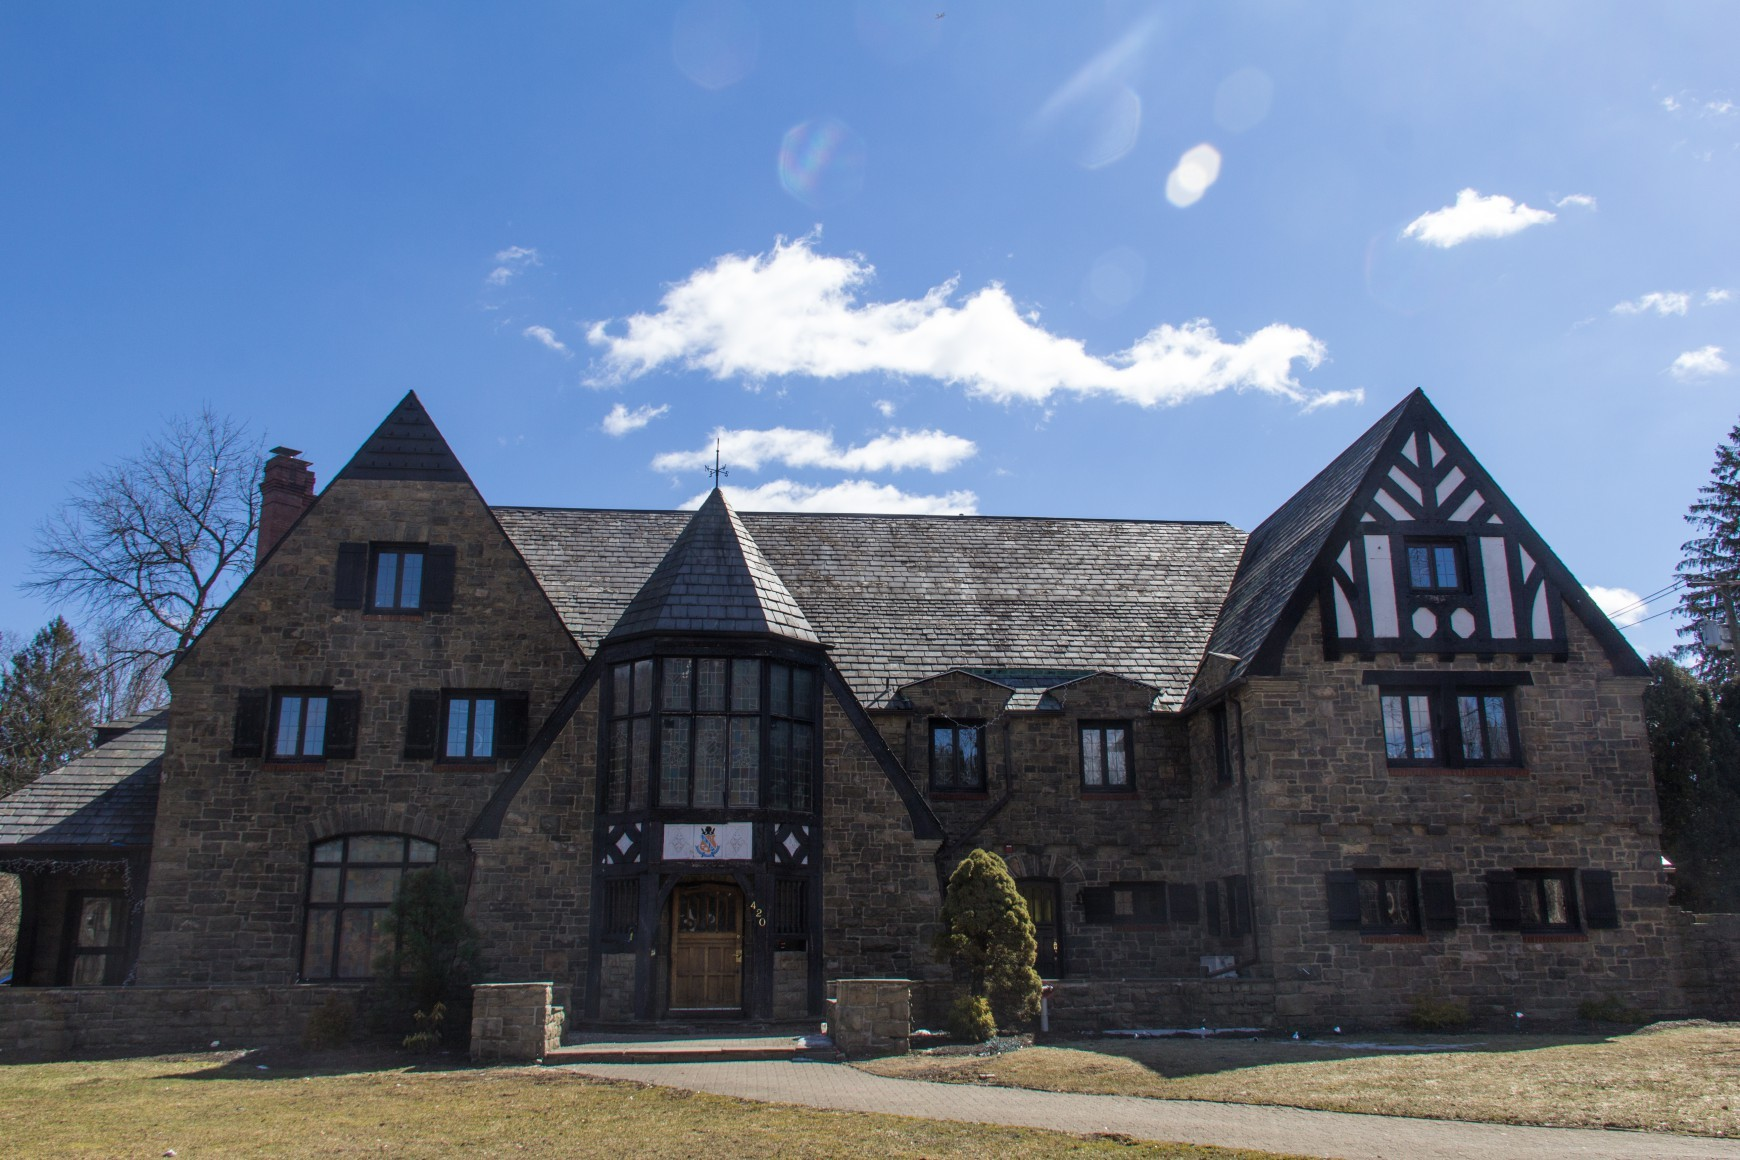 Penn State Ifc Pledges Due Process On Kdr Situation  Onward State-3880